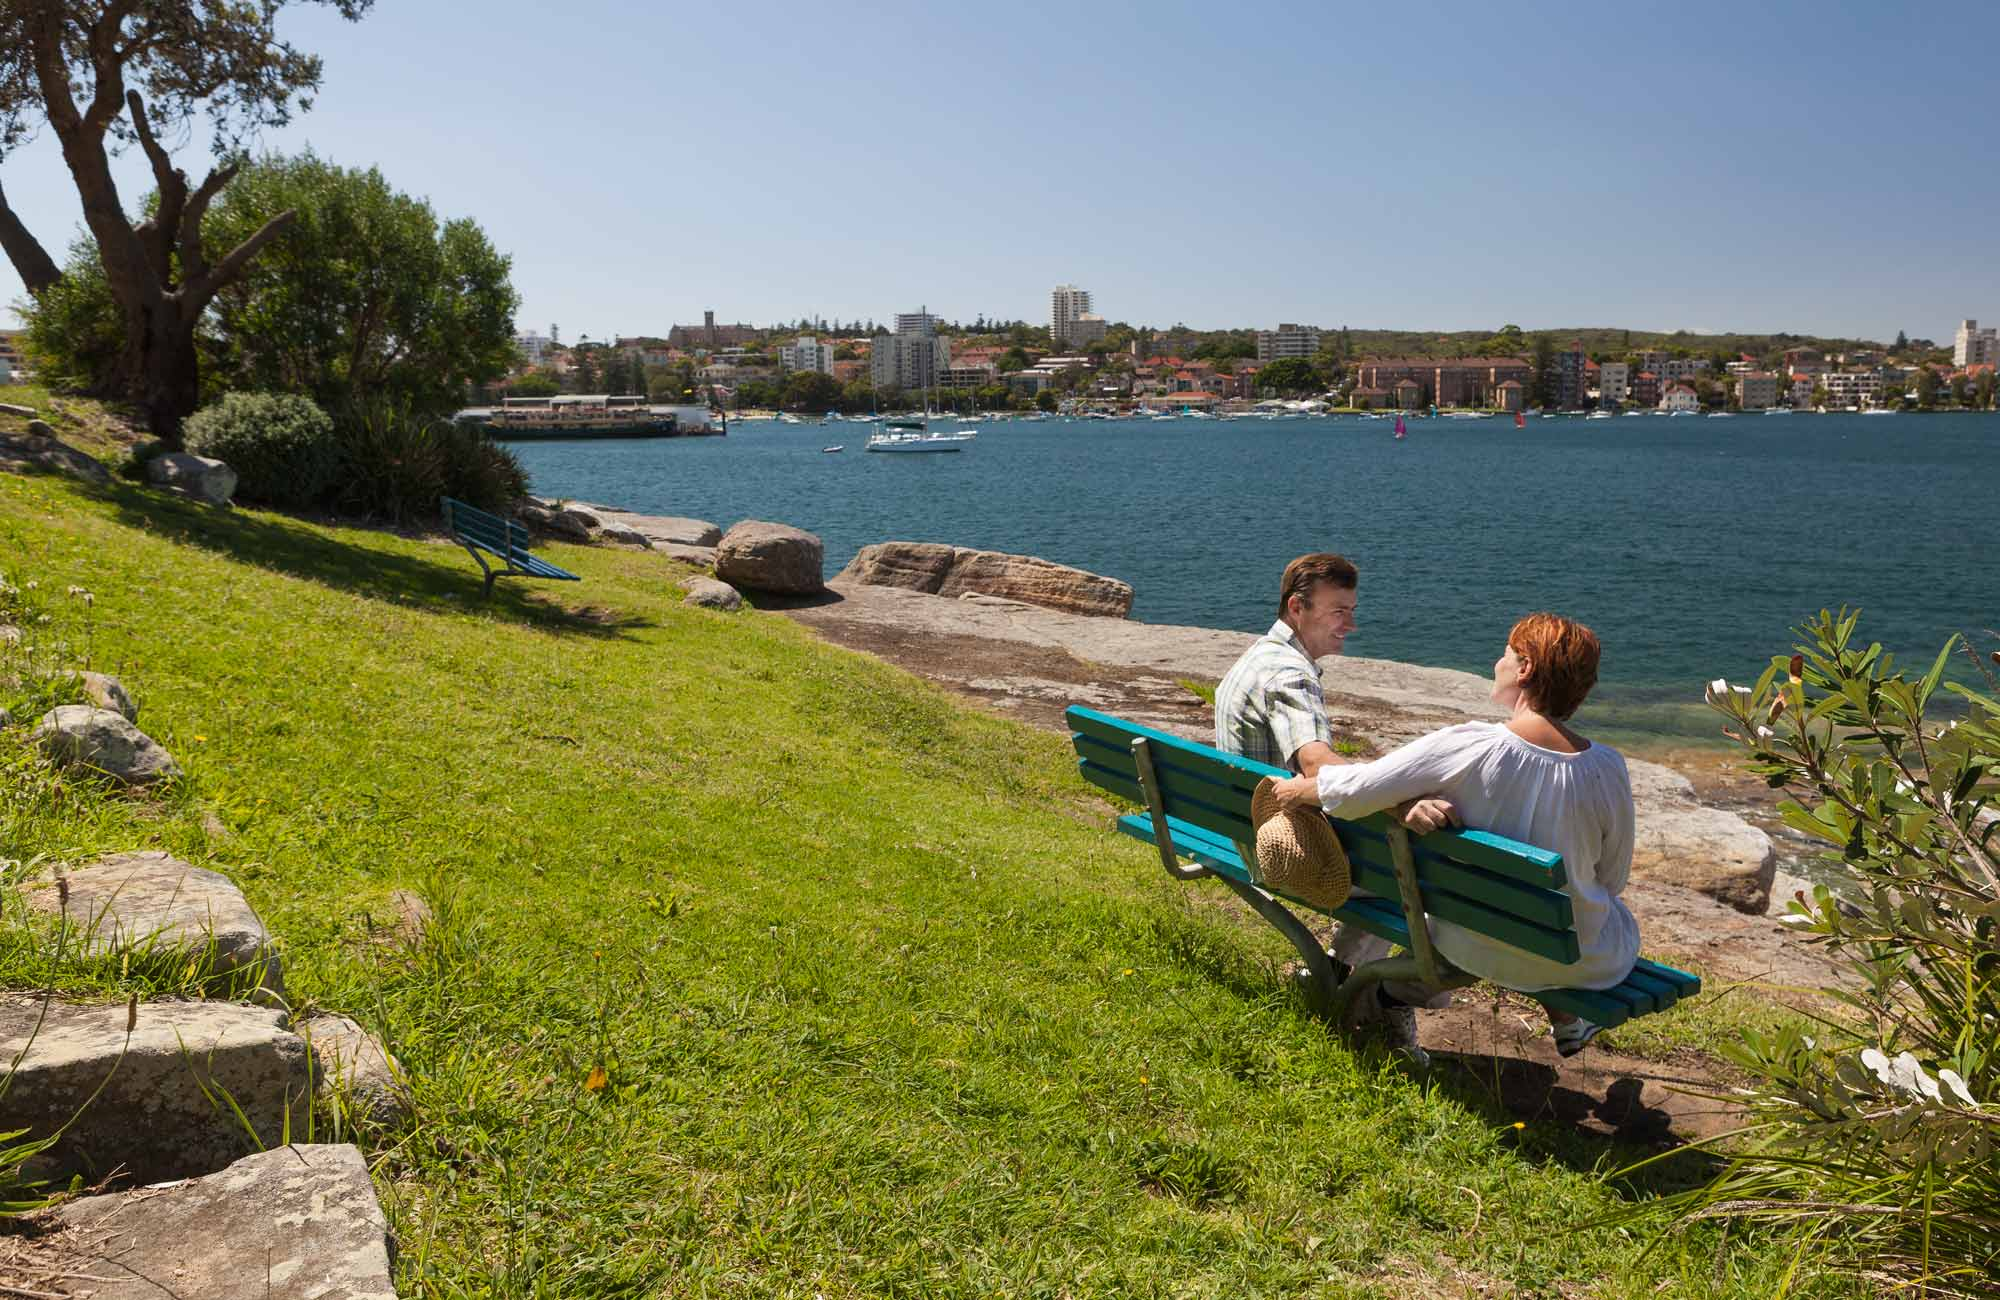 Manly Scenic Walk, Sydney Harbour National Park. Photo: David Finnegan